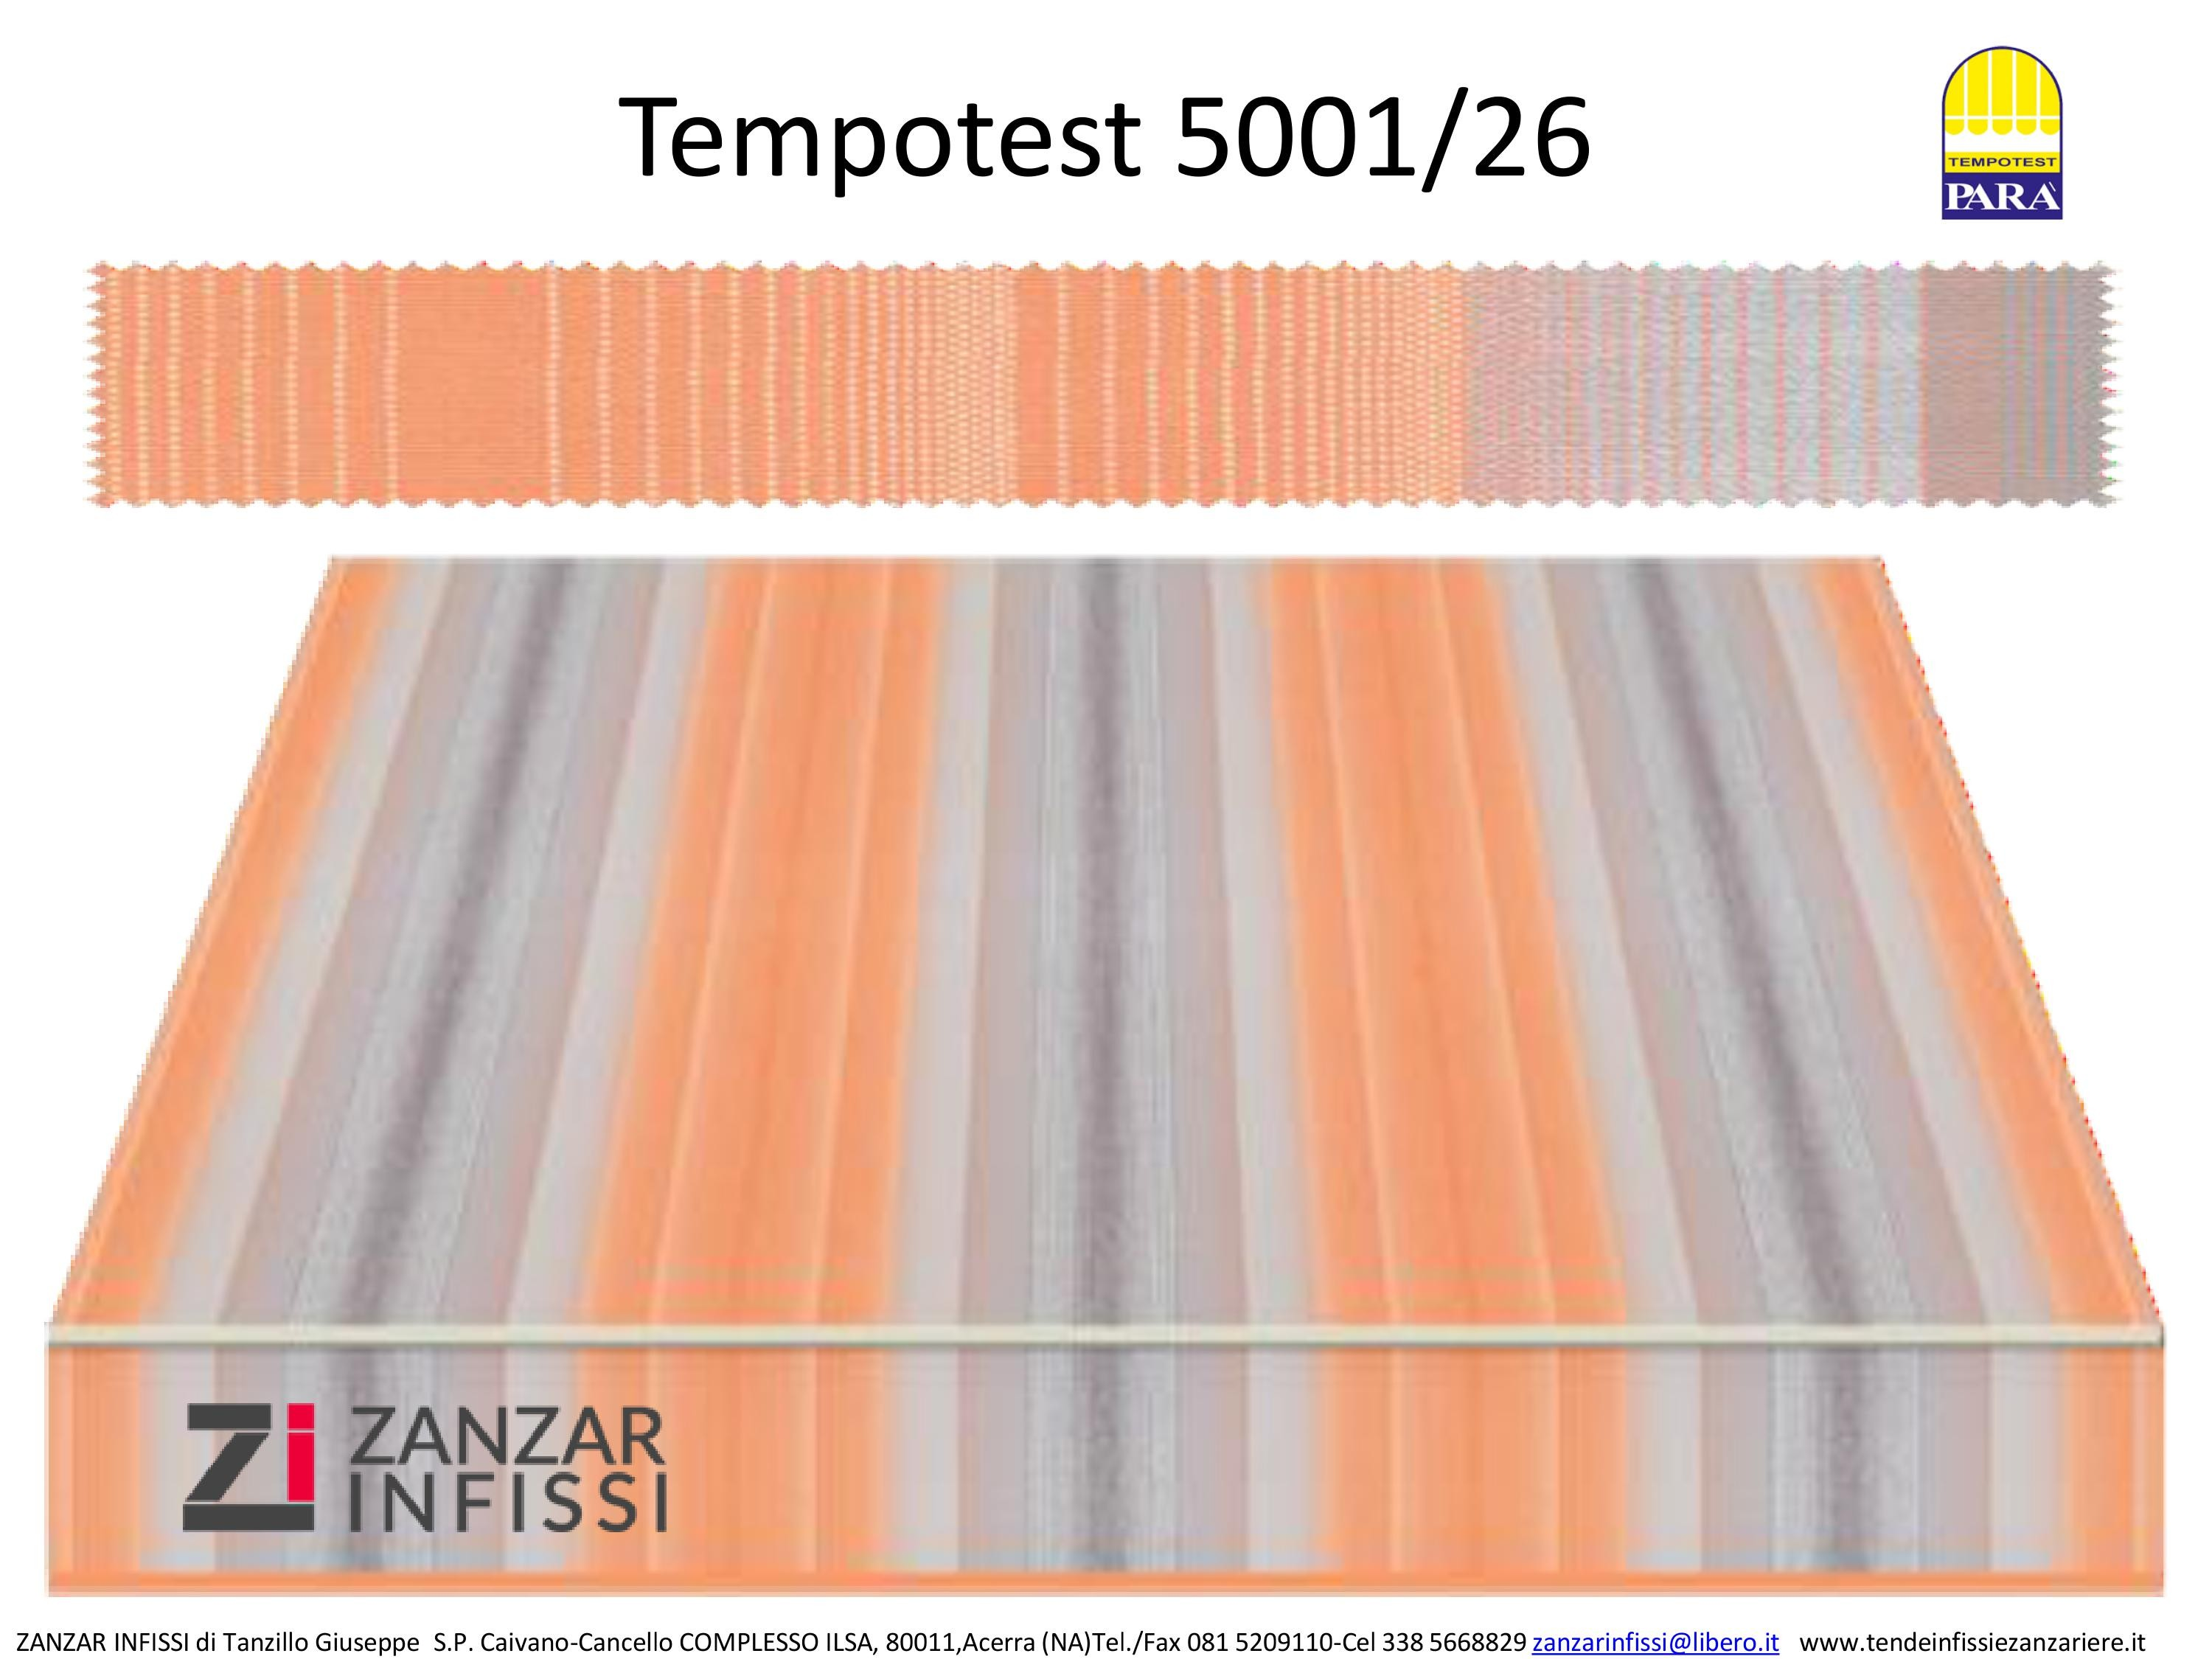 Tempotest 5001/26